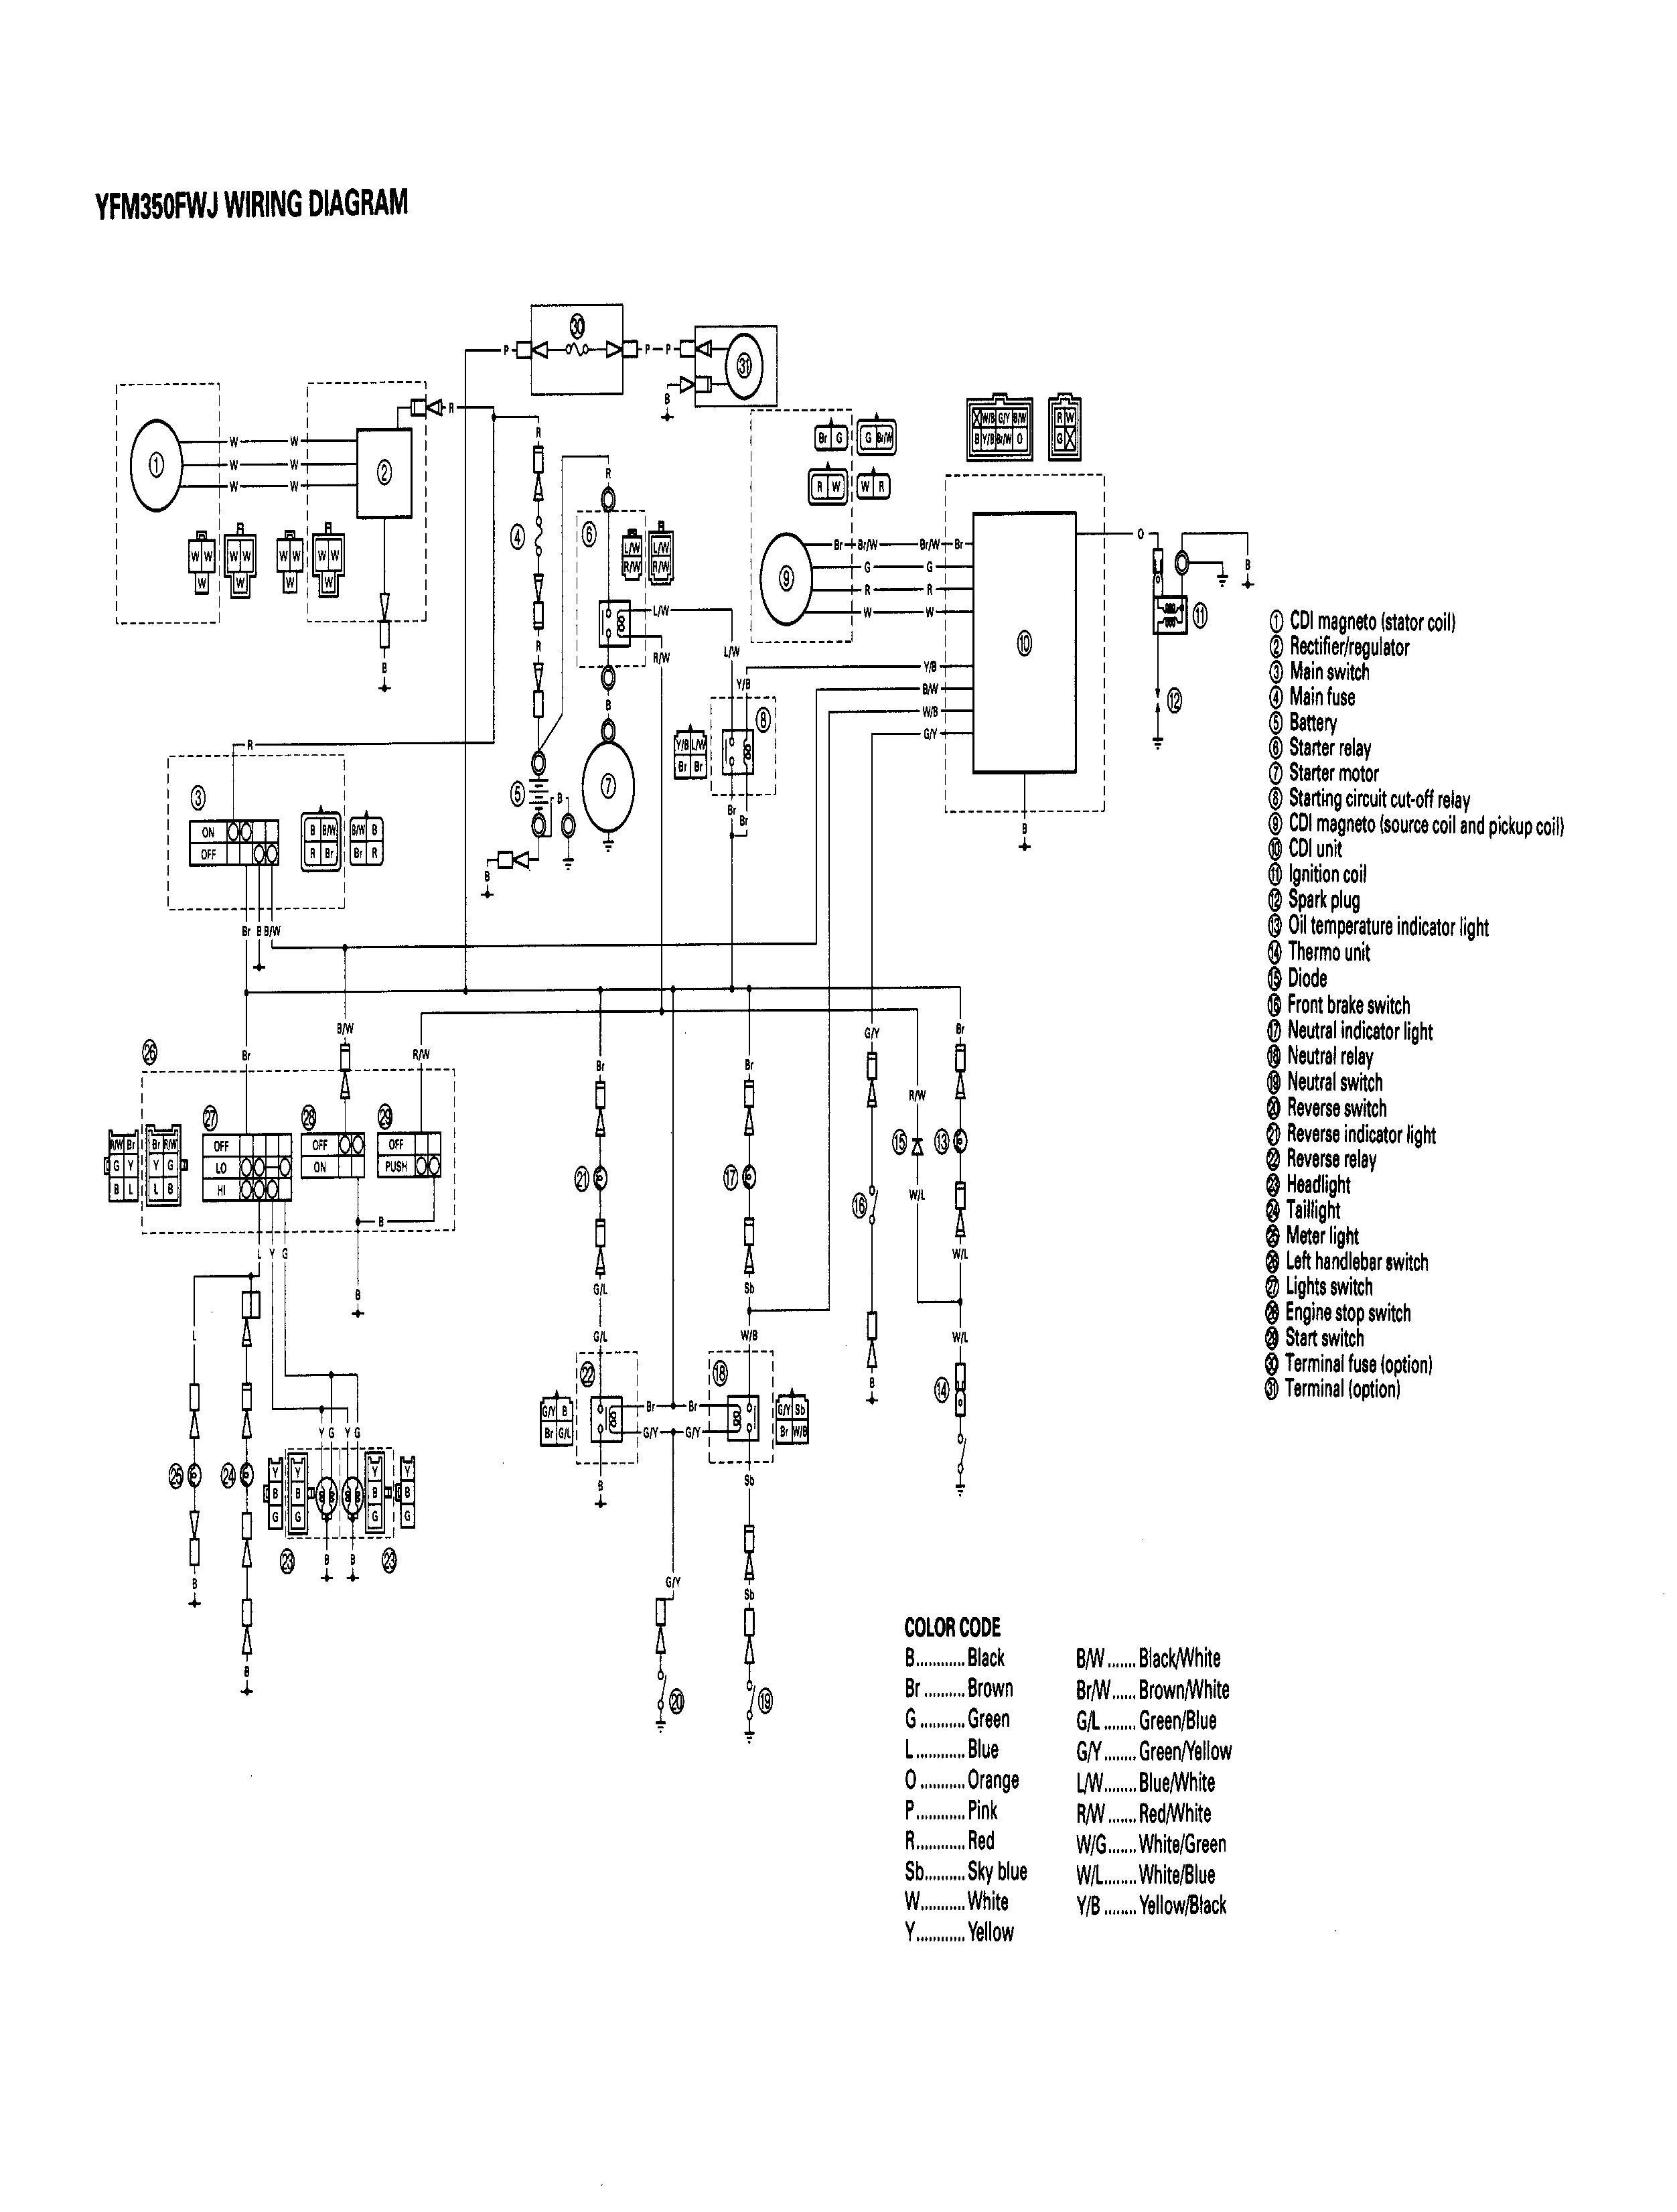 D Bigbear X Wiring Yamaha Big Bear Wiring Diagram on 1995 yamaha big bear 350 4x4